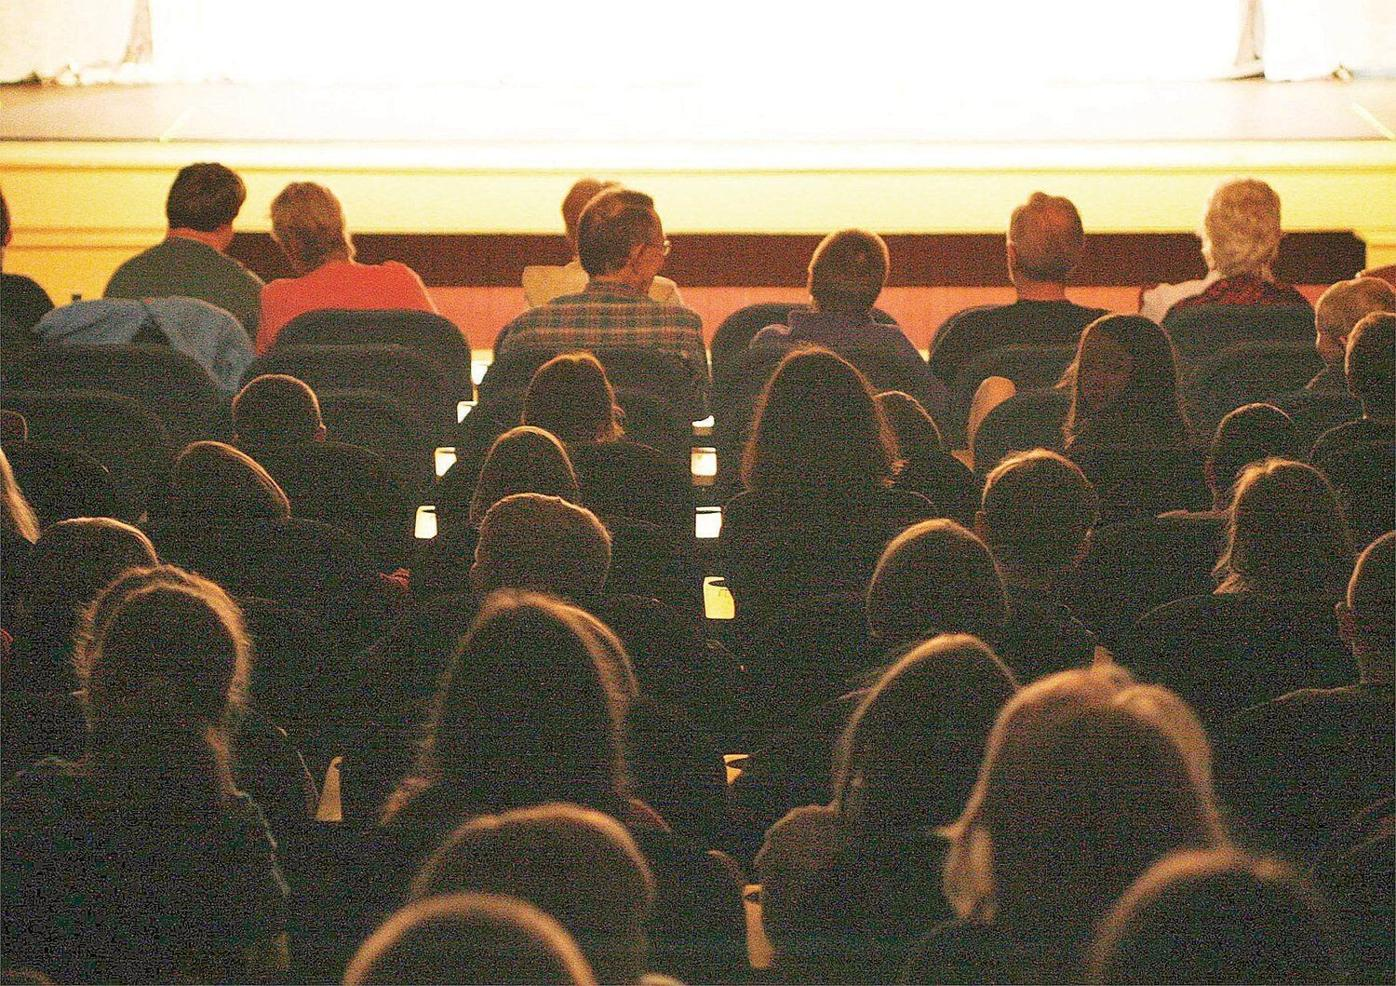 When there's no audience ... Coping with rapid change organizations do their best